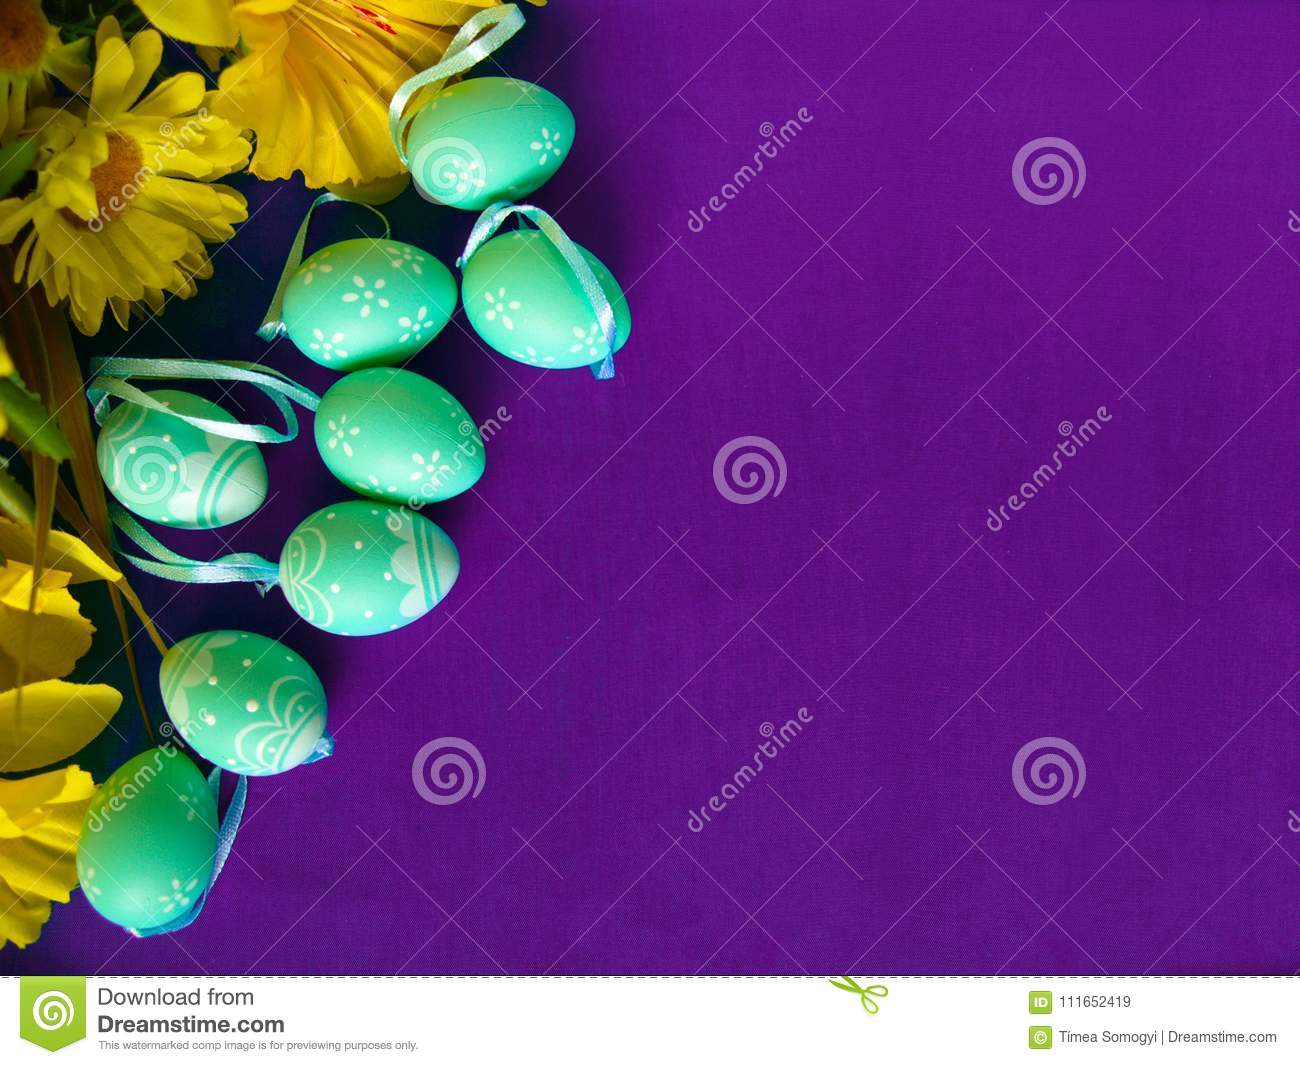 Easter eggs on purple silk, with yellow flowers.